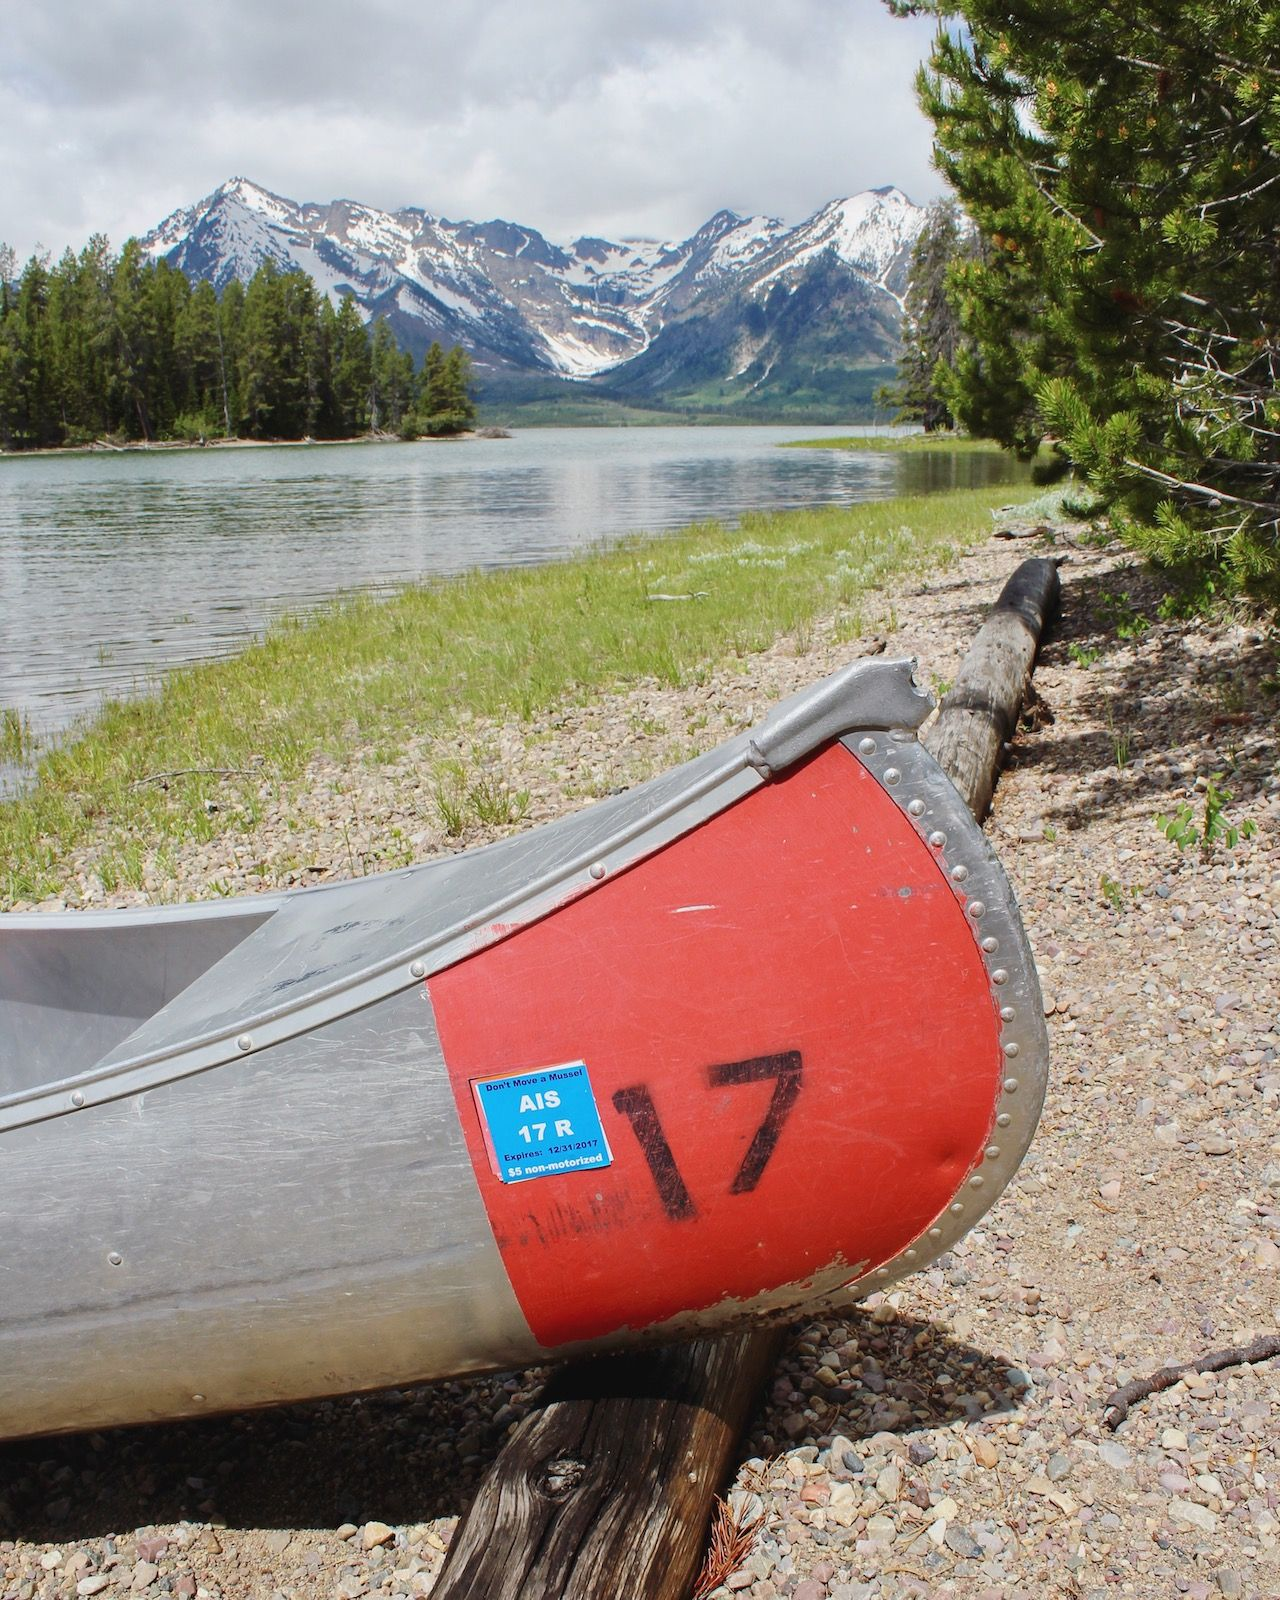 The ultimate way to experience the Grand Tetons is by canoe